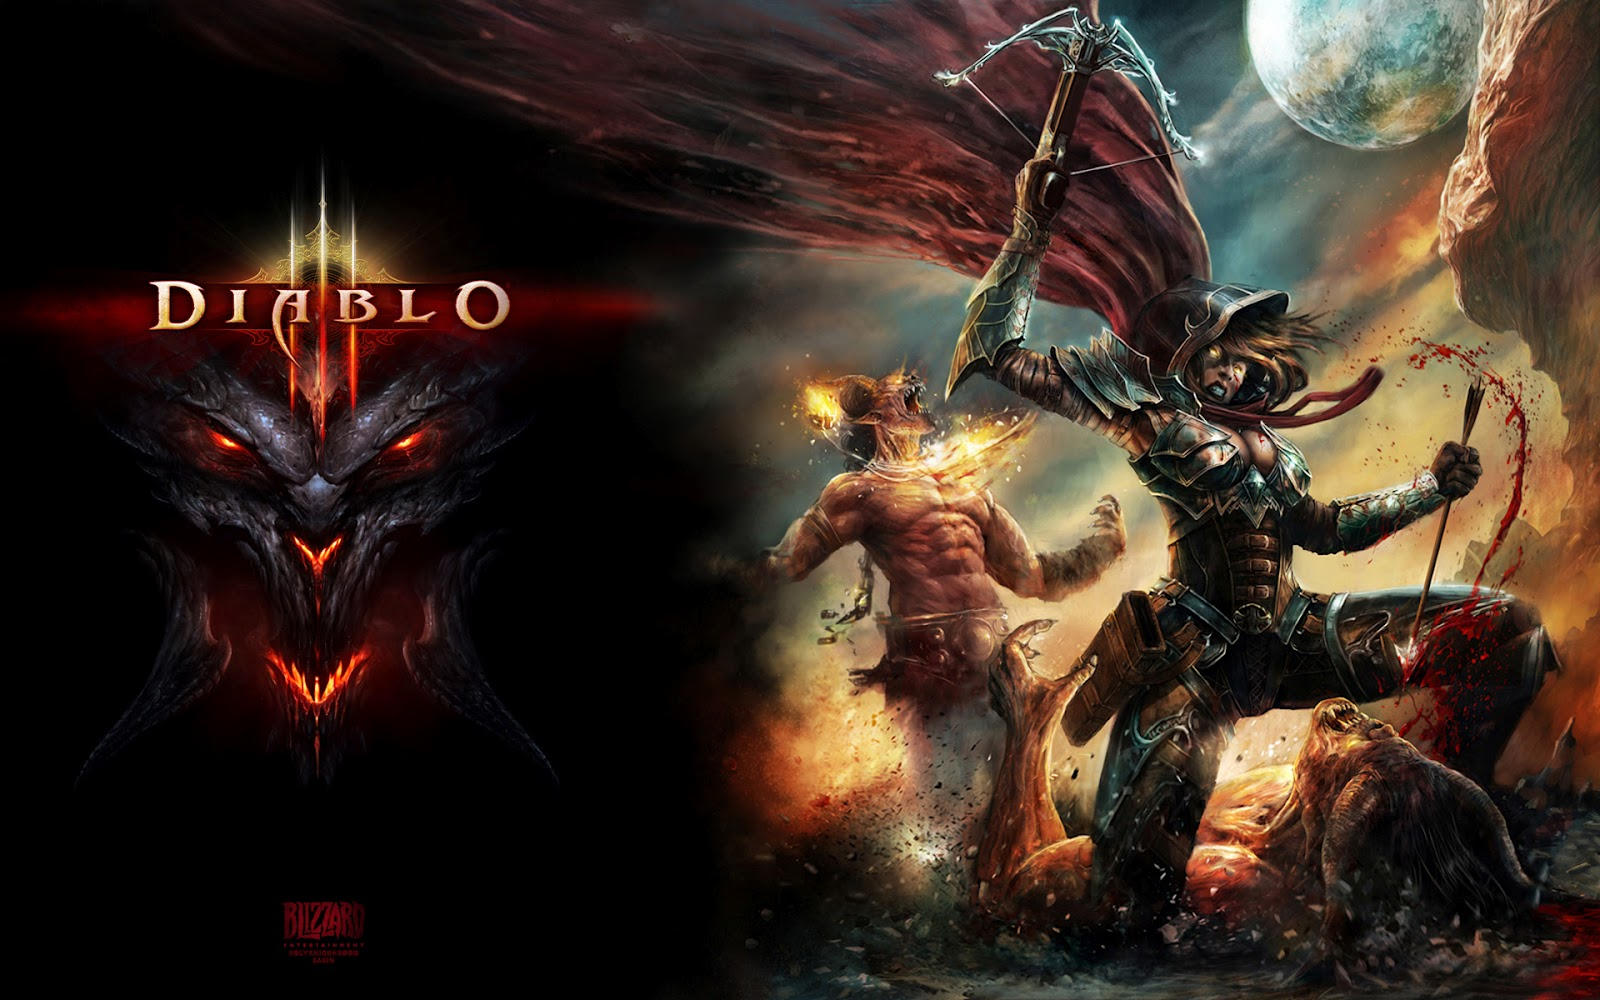 http://1.bp.blogspot.com/-CR3VJiLxkp4/T7I205ry-8I/AAAAAAAAA38/kUHk8SvGa9Q/s1600/demon+hunter+wallpaper+3.jpg